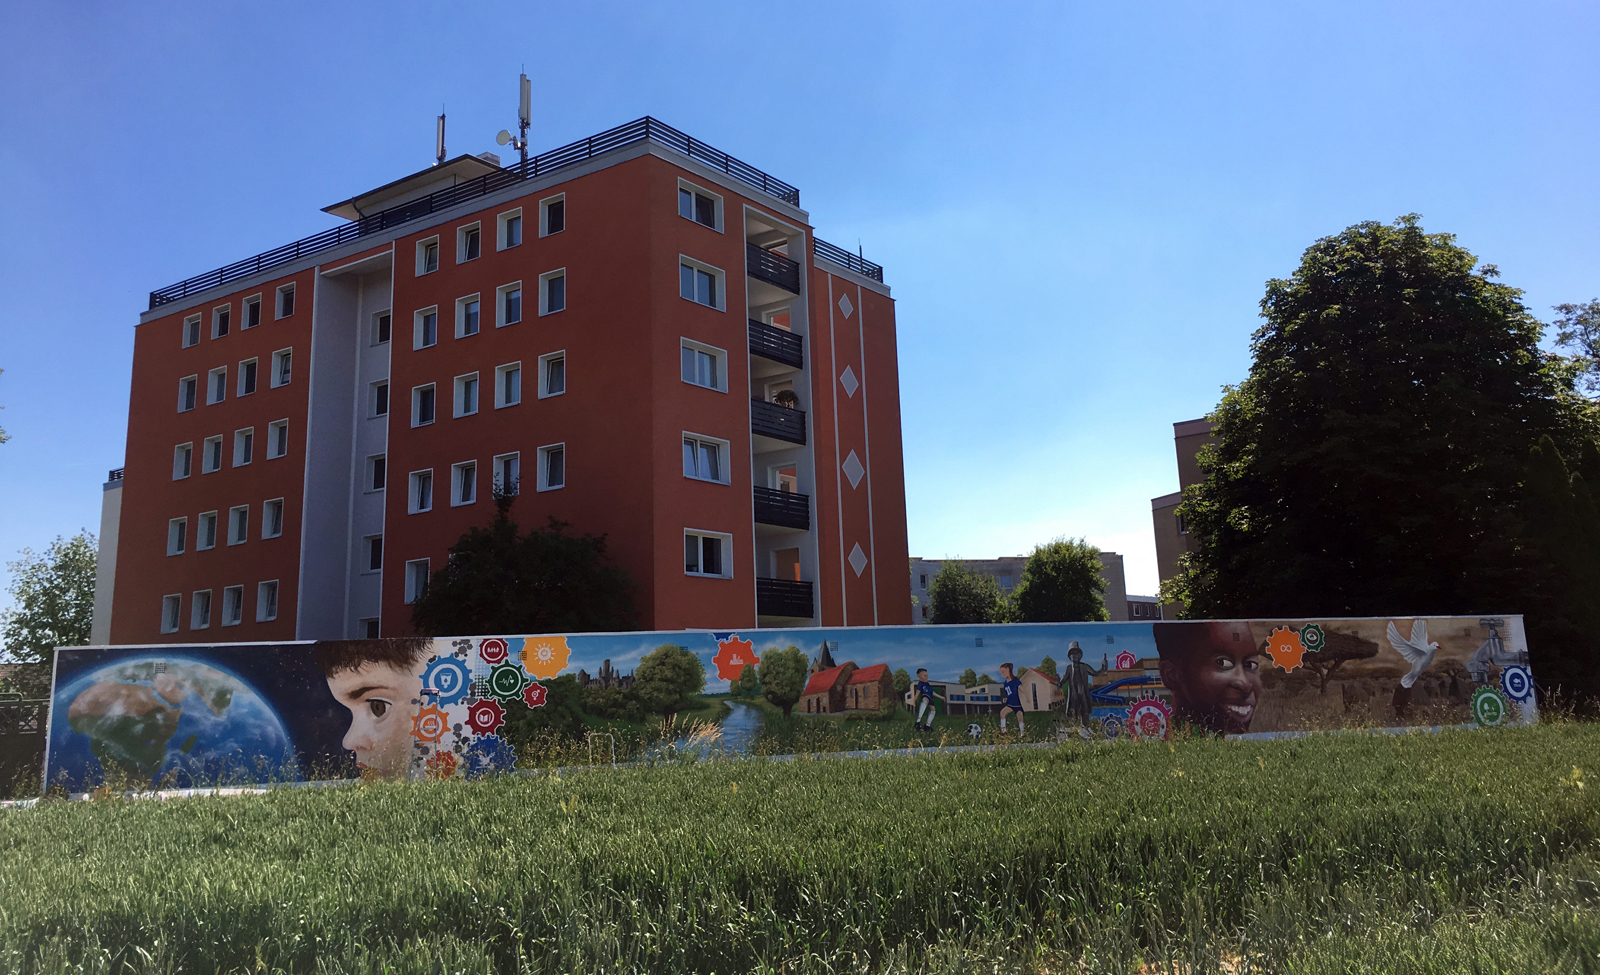 Graffiti Workshop in 2017